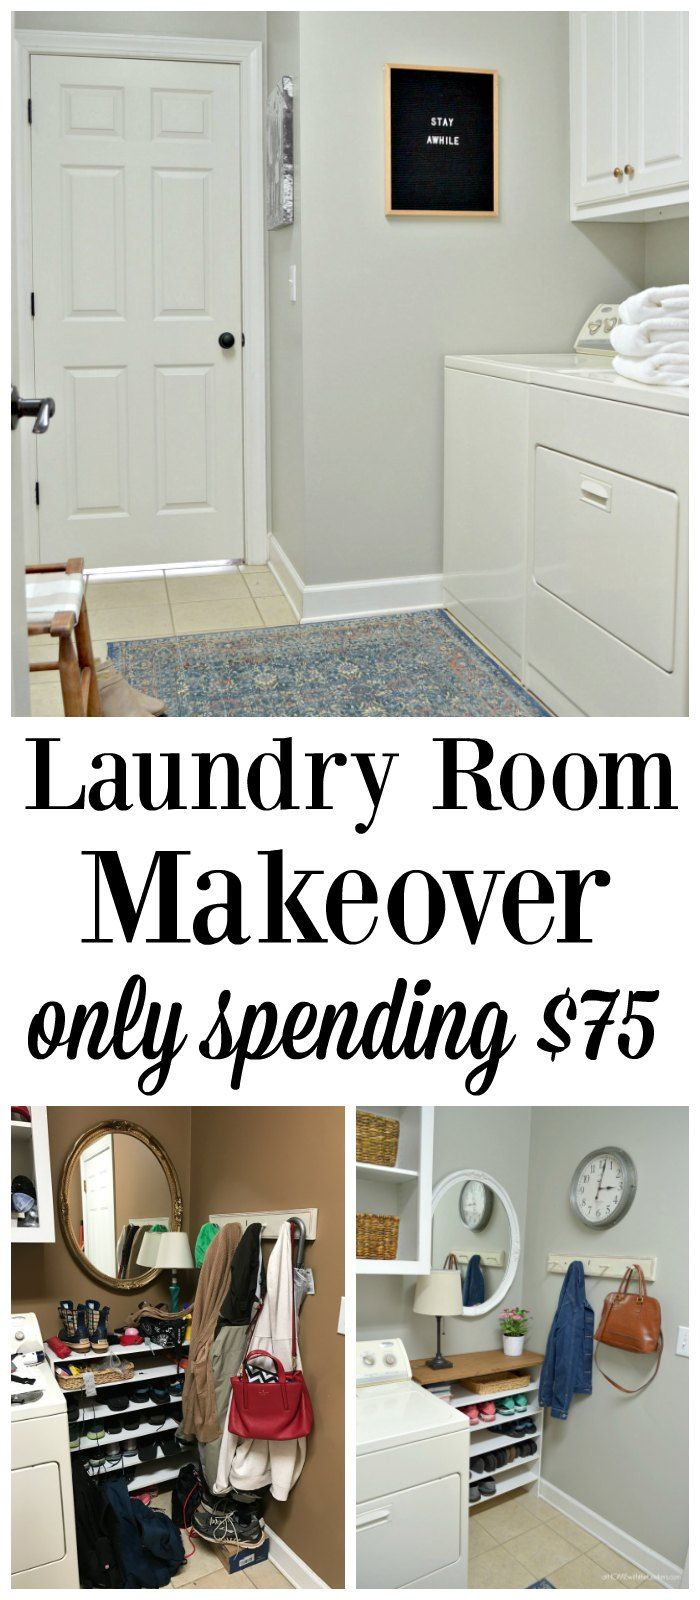 Home decorating diy projects laundry room makeover using for Room decor diy ideas 2017